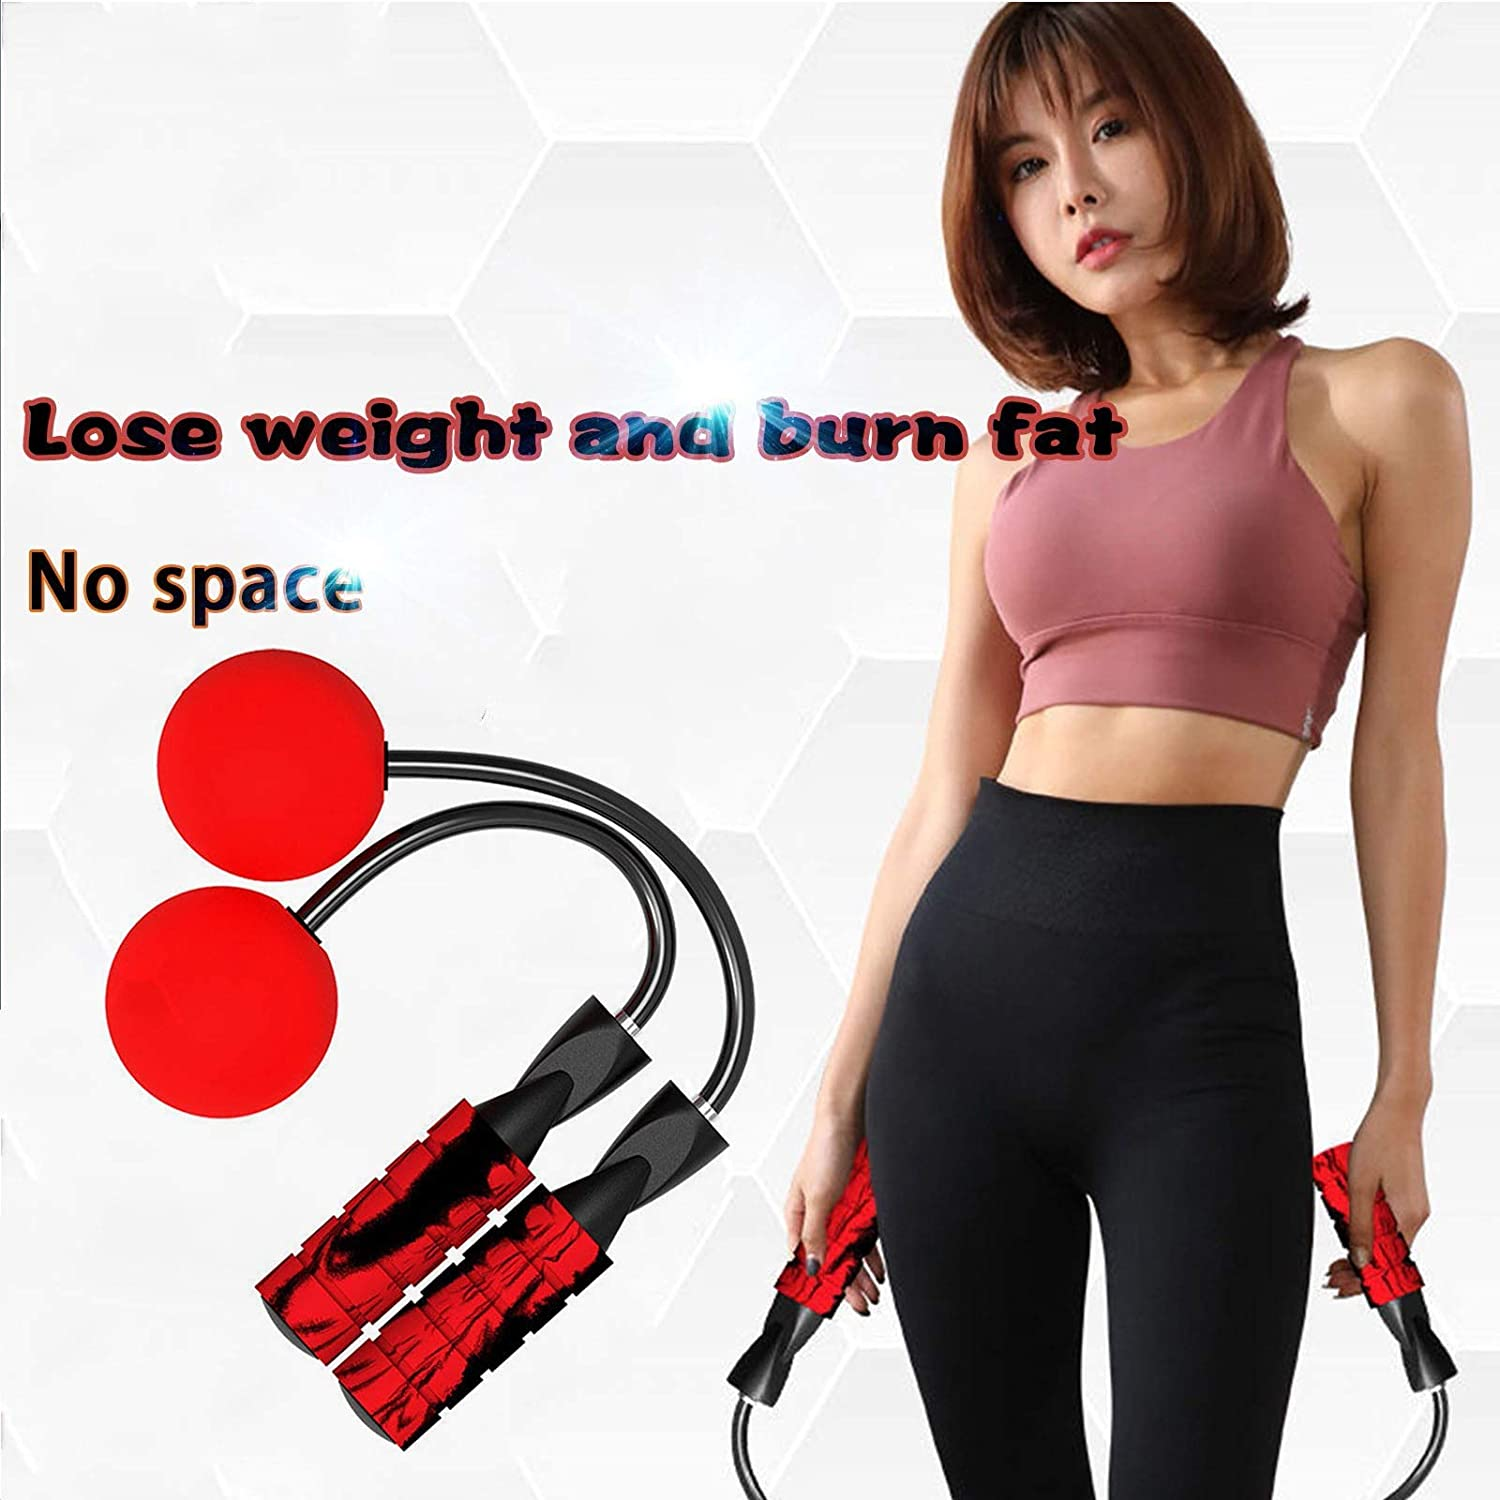 Boxing-Updated Longer Rope Version Indoor Cordless Jump Rope Weighted Ropeless Jump Rope With Double Handles-Long or Short Adjustable Bod Ropes for Indoor Exercise Fitness Workout Crossfit Speed Training